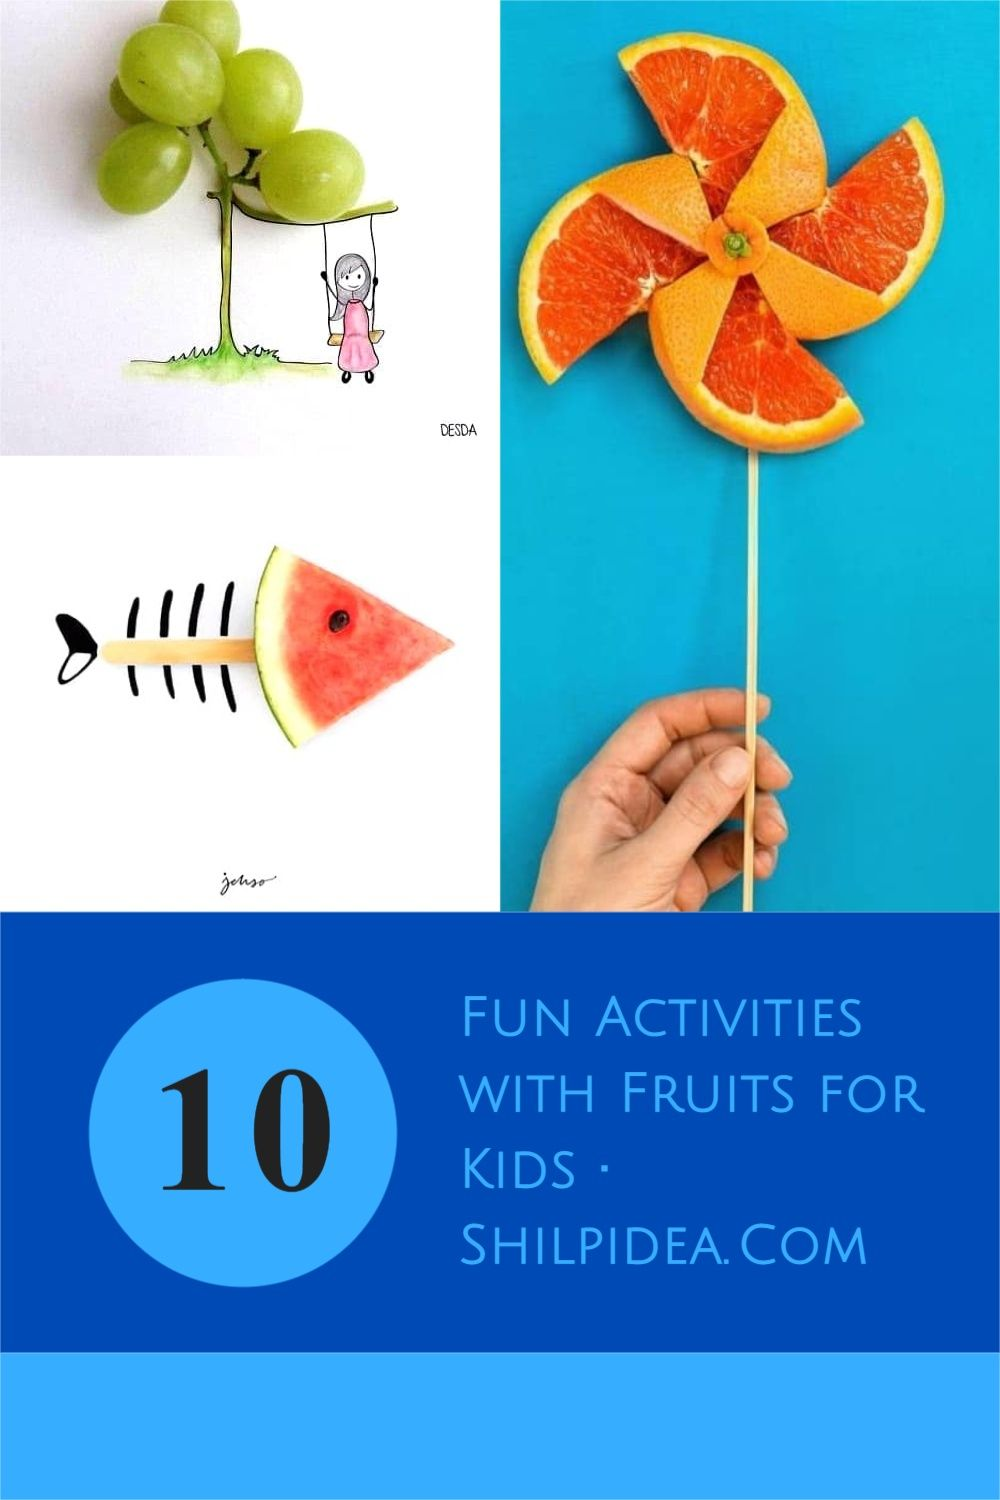 10 Fun Activities with Fruits for Kids • Shilpidea_Com